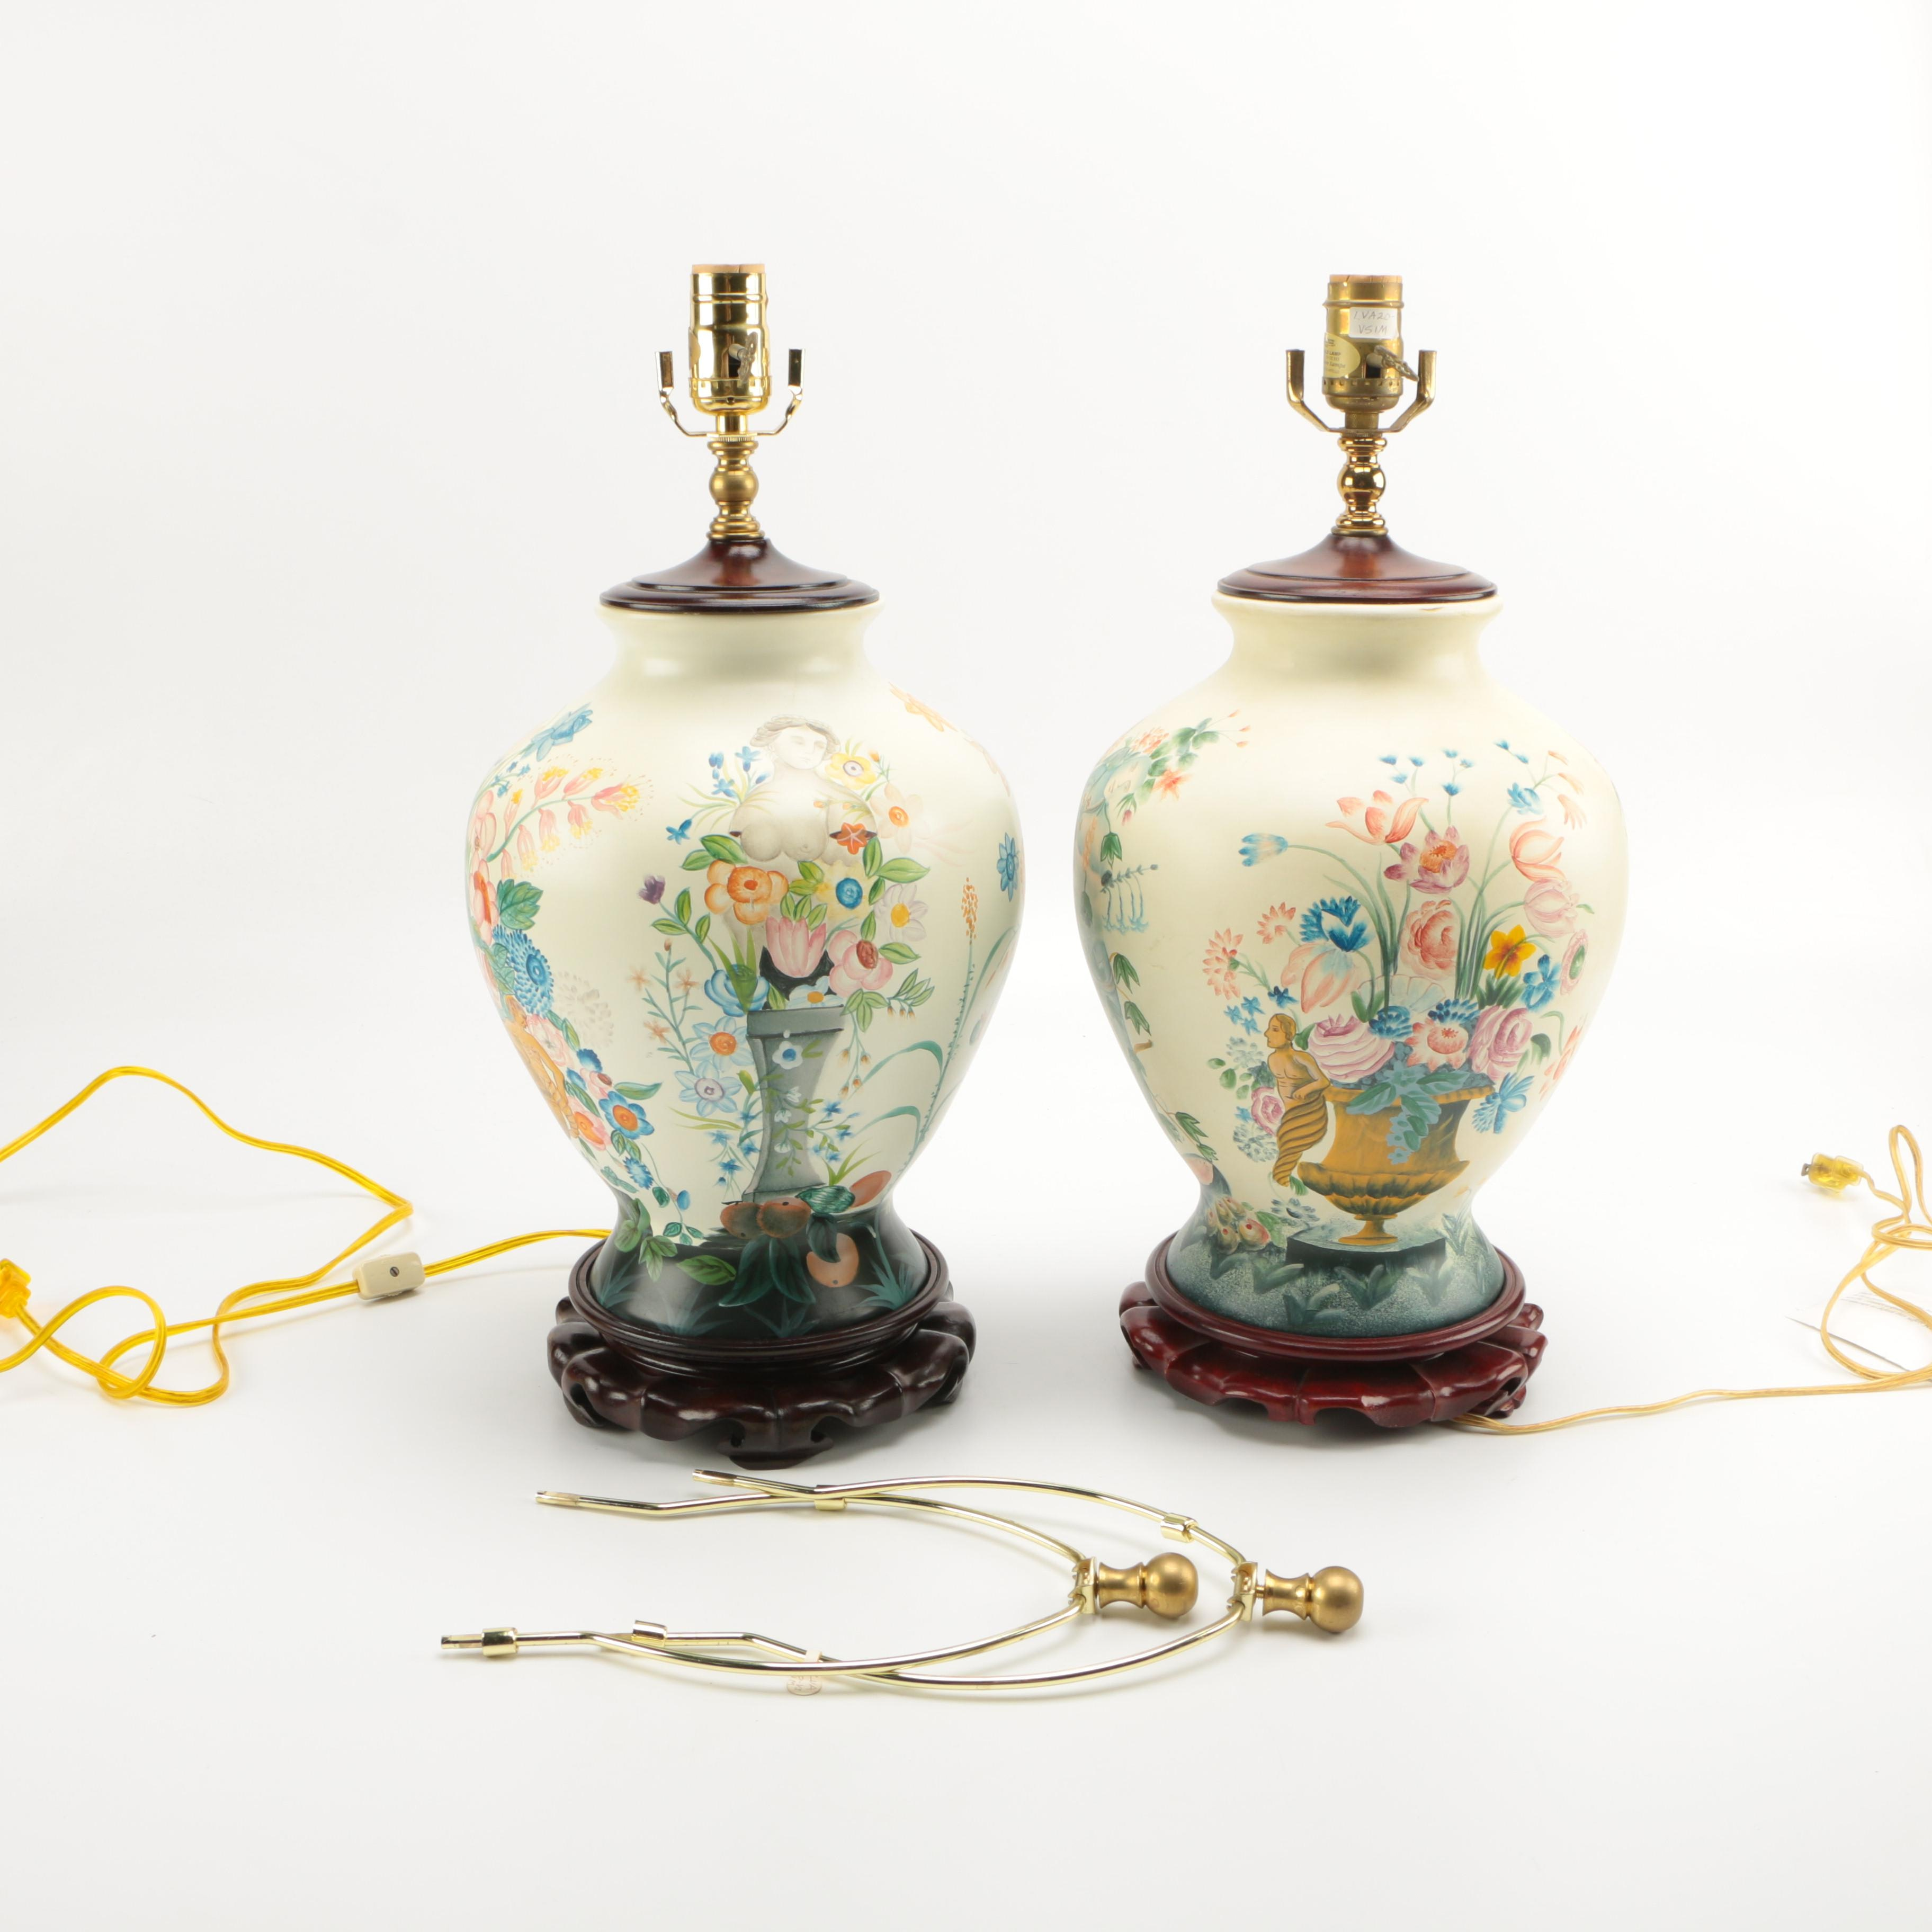 V&A Museum Hand Painted Ceramic Lamps